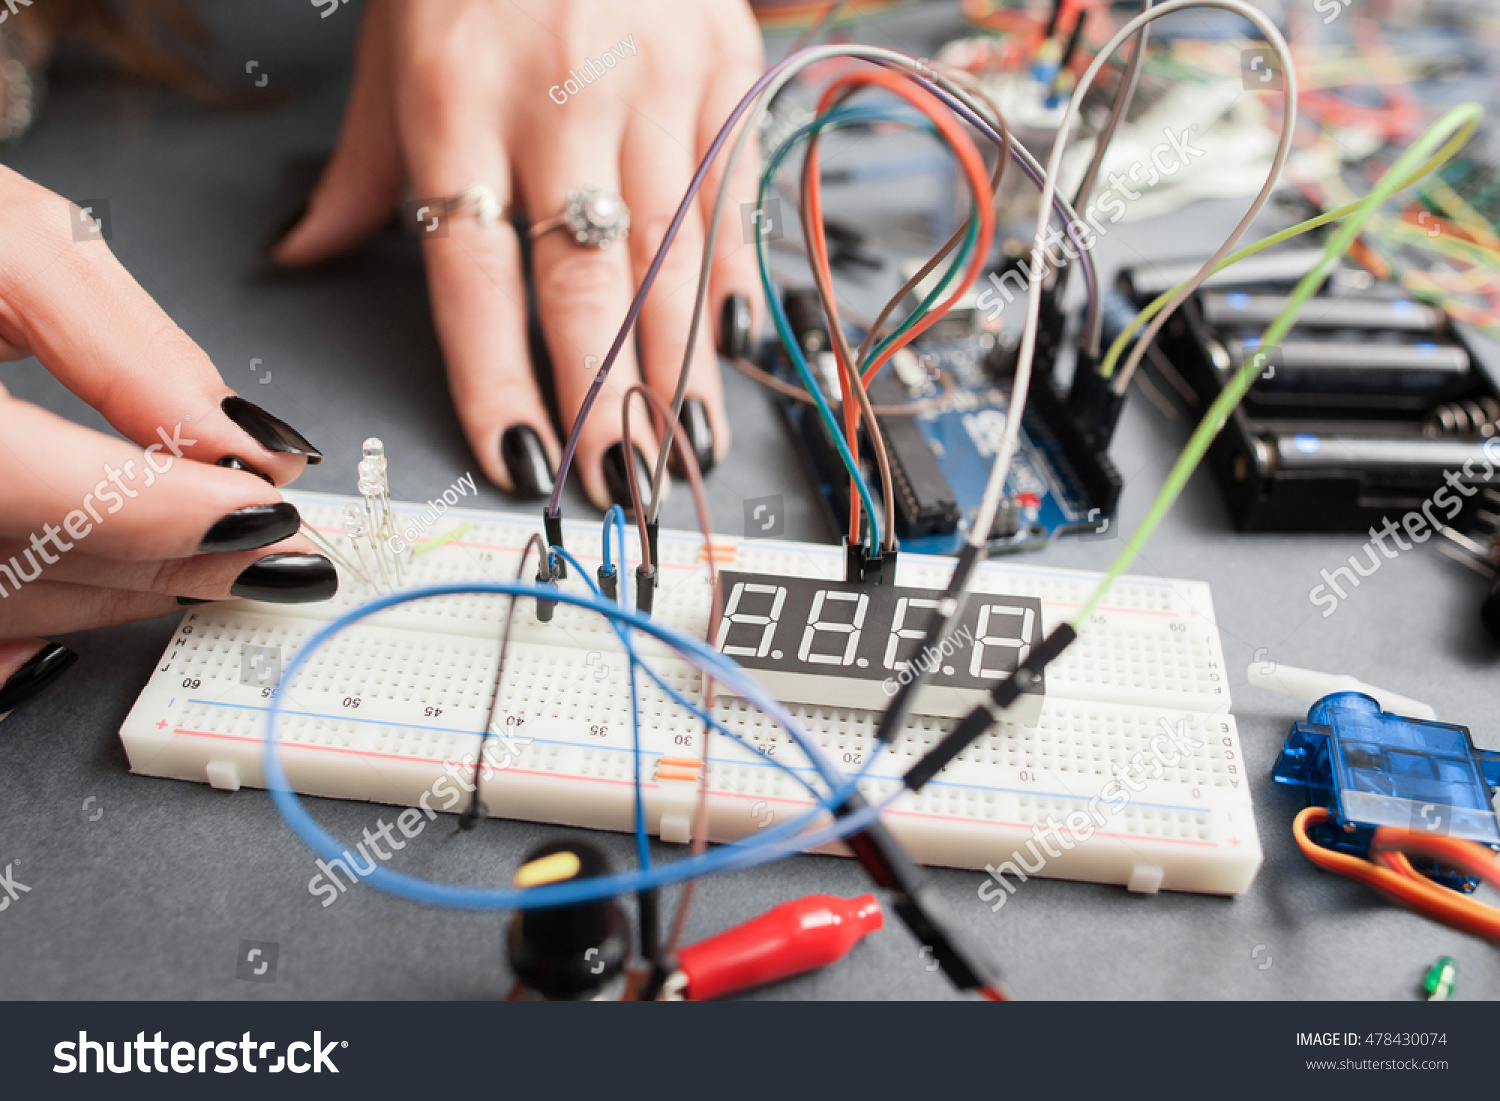 Woman Engineer Connecting Led Breadboard Electronics Stock Photo Hobby Electronic Circuits To Development Modern Technologies Innovation